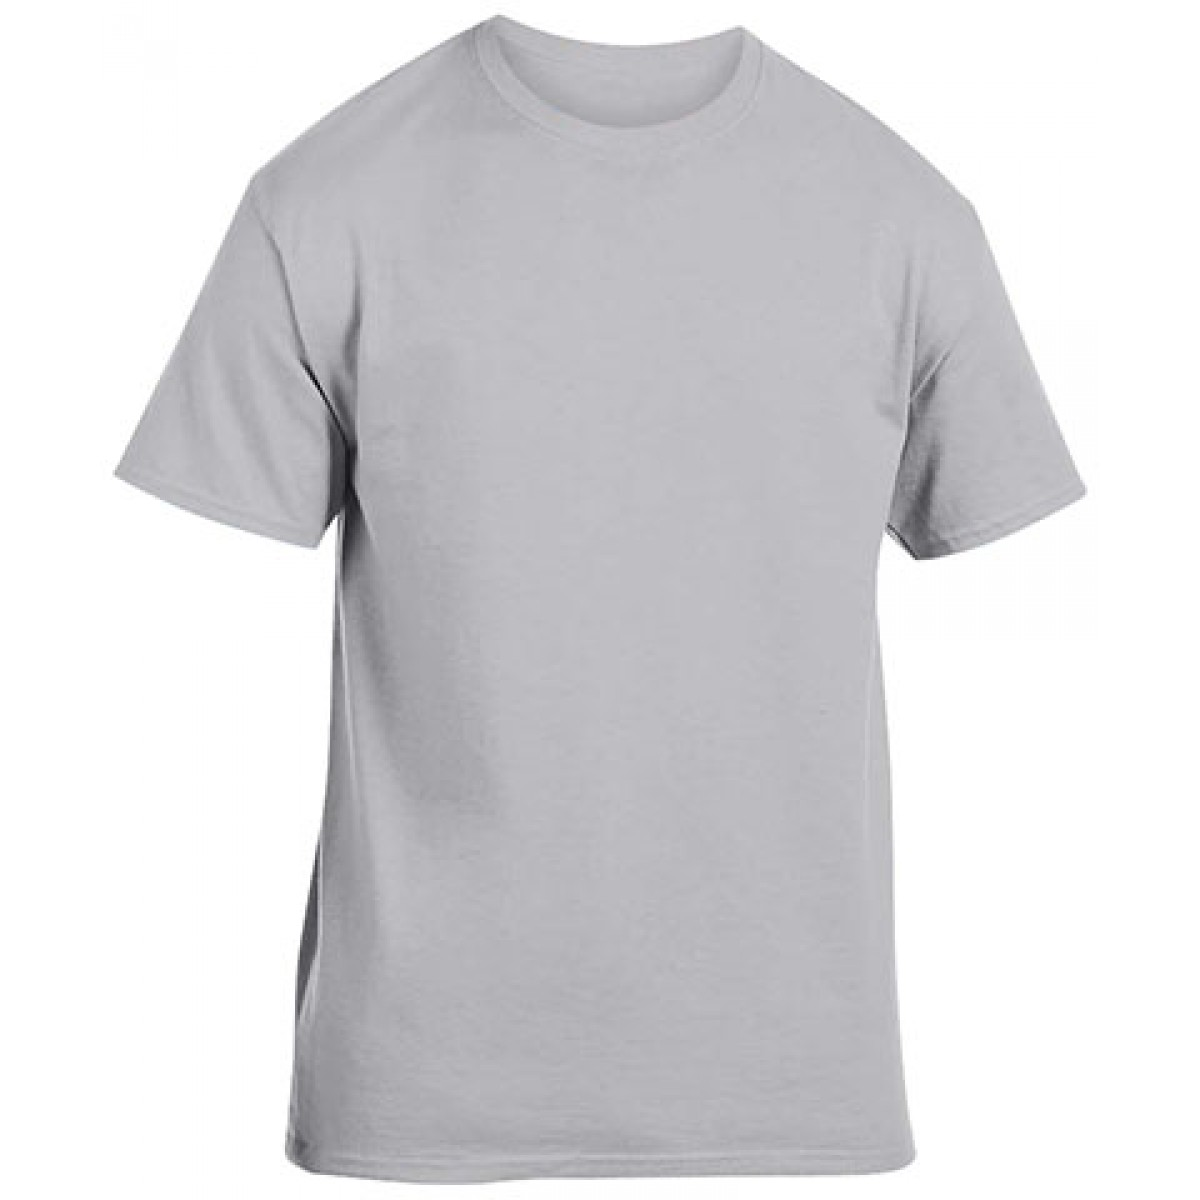 Cotton Short Sleeve T-Shirt-Gray-2XL